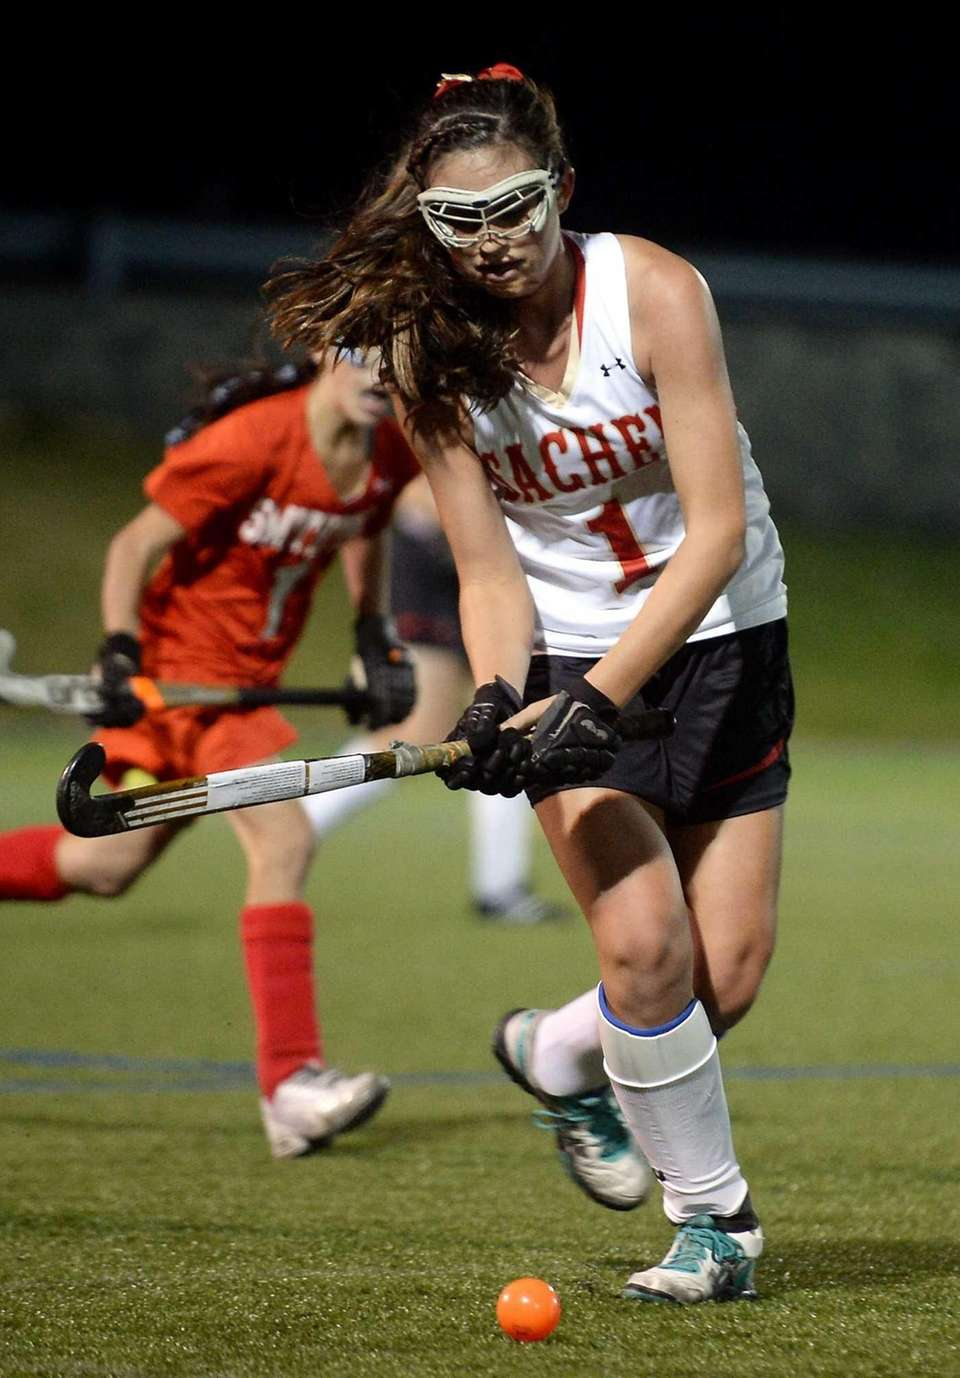 Sachem East senior Katie Trombetta controls the ball